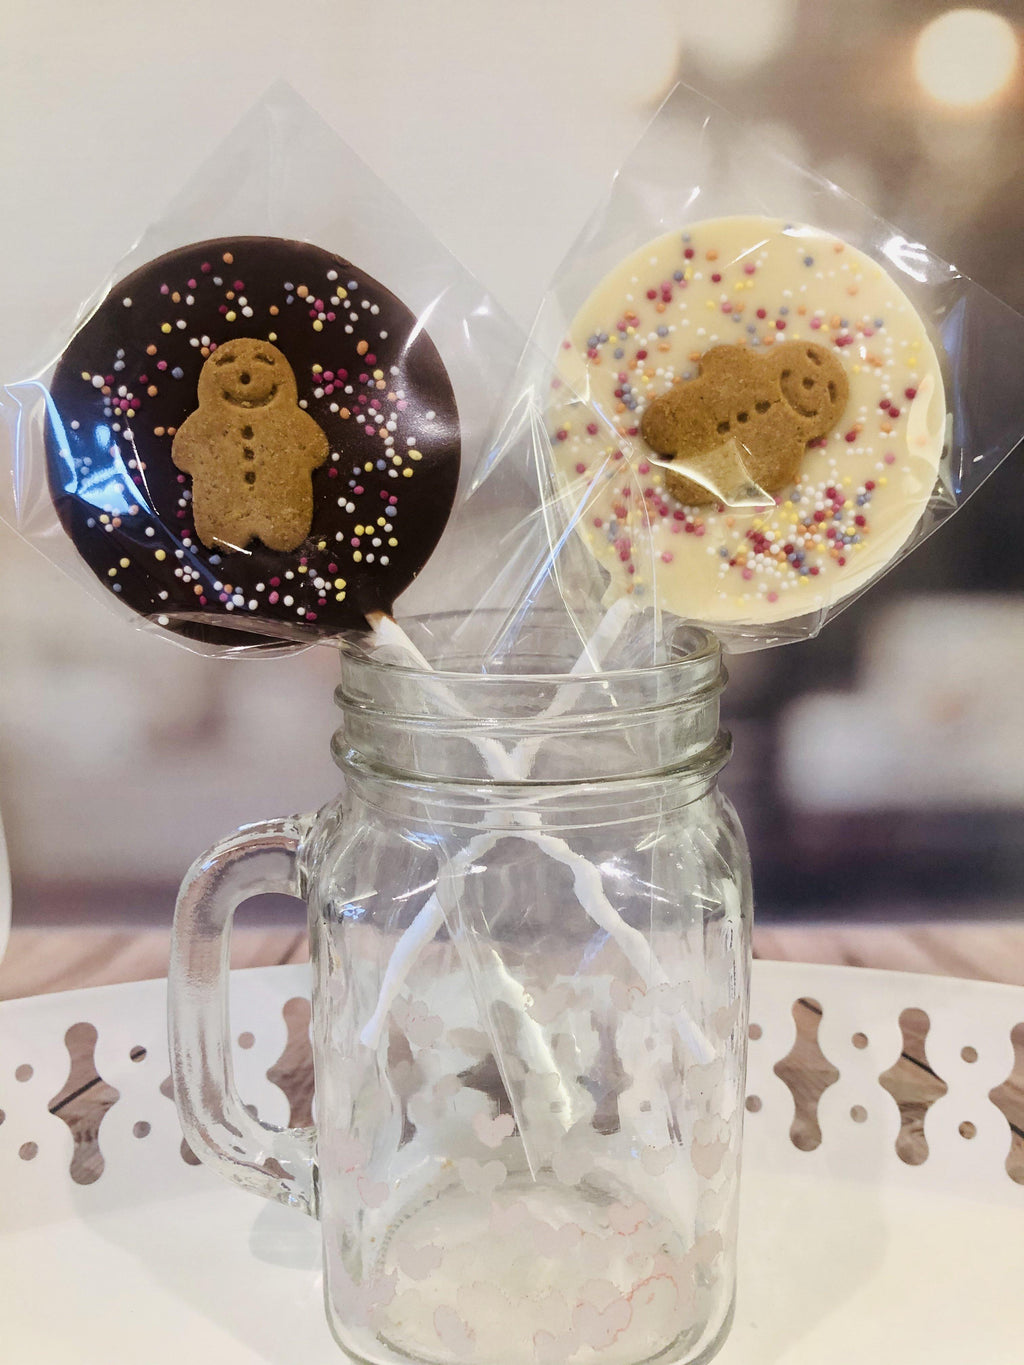 Gingerbread Man Sprinkles Lollipop - The Little Chocolate Teapot Company